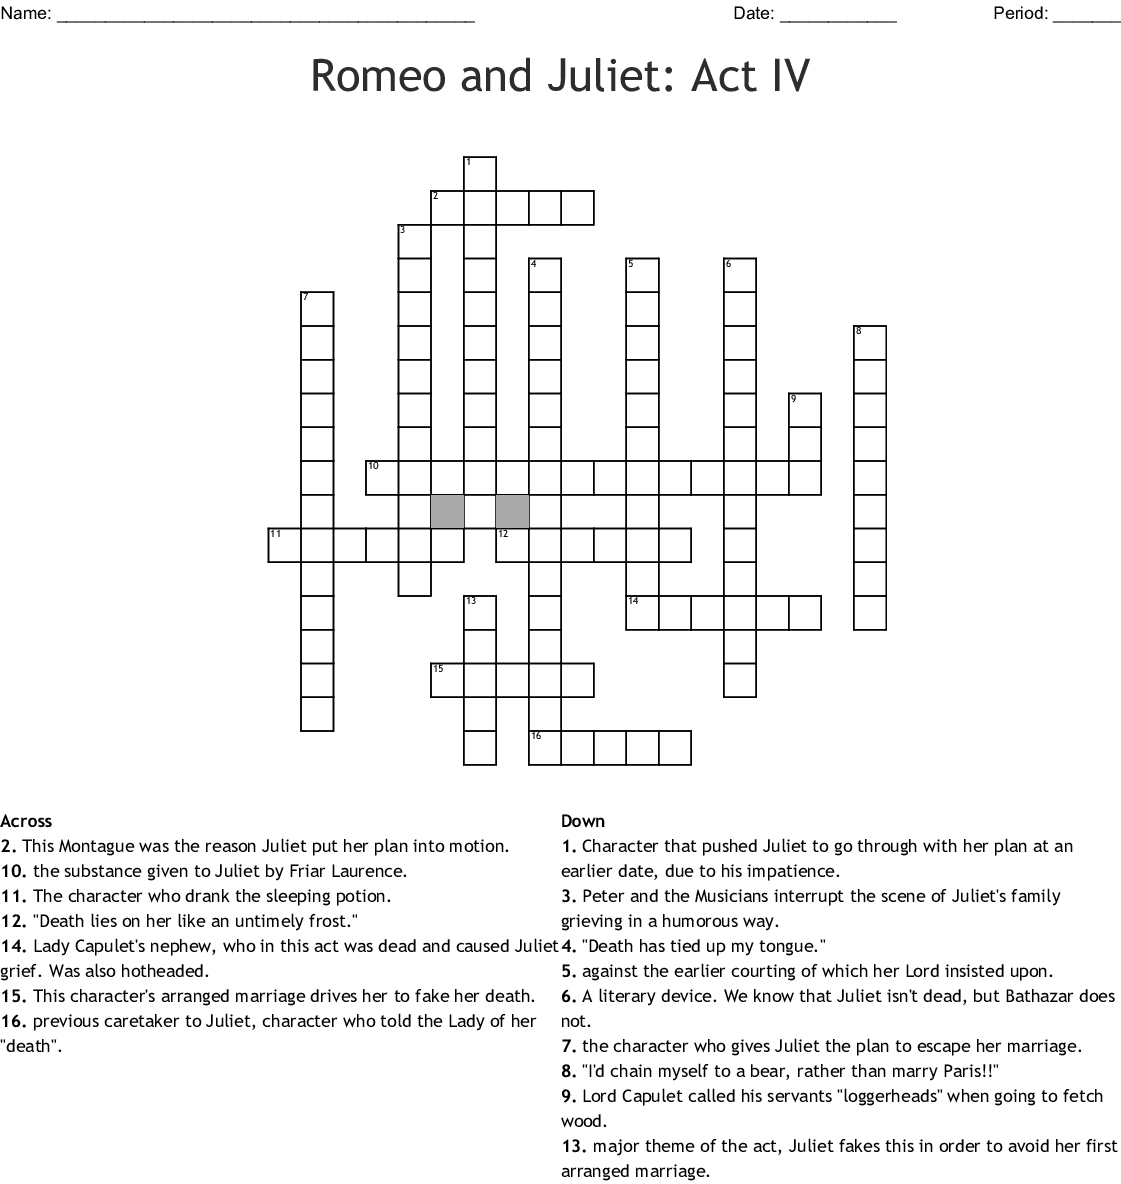 Romeo And Juliet Close Reading Worksheet Answers